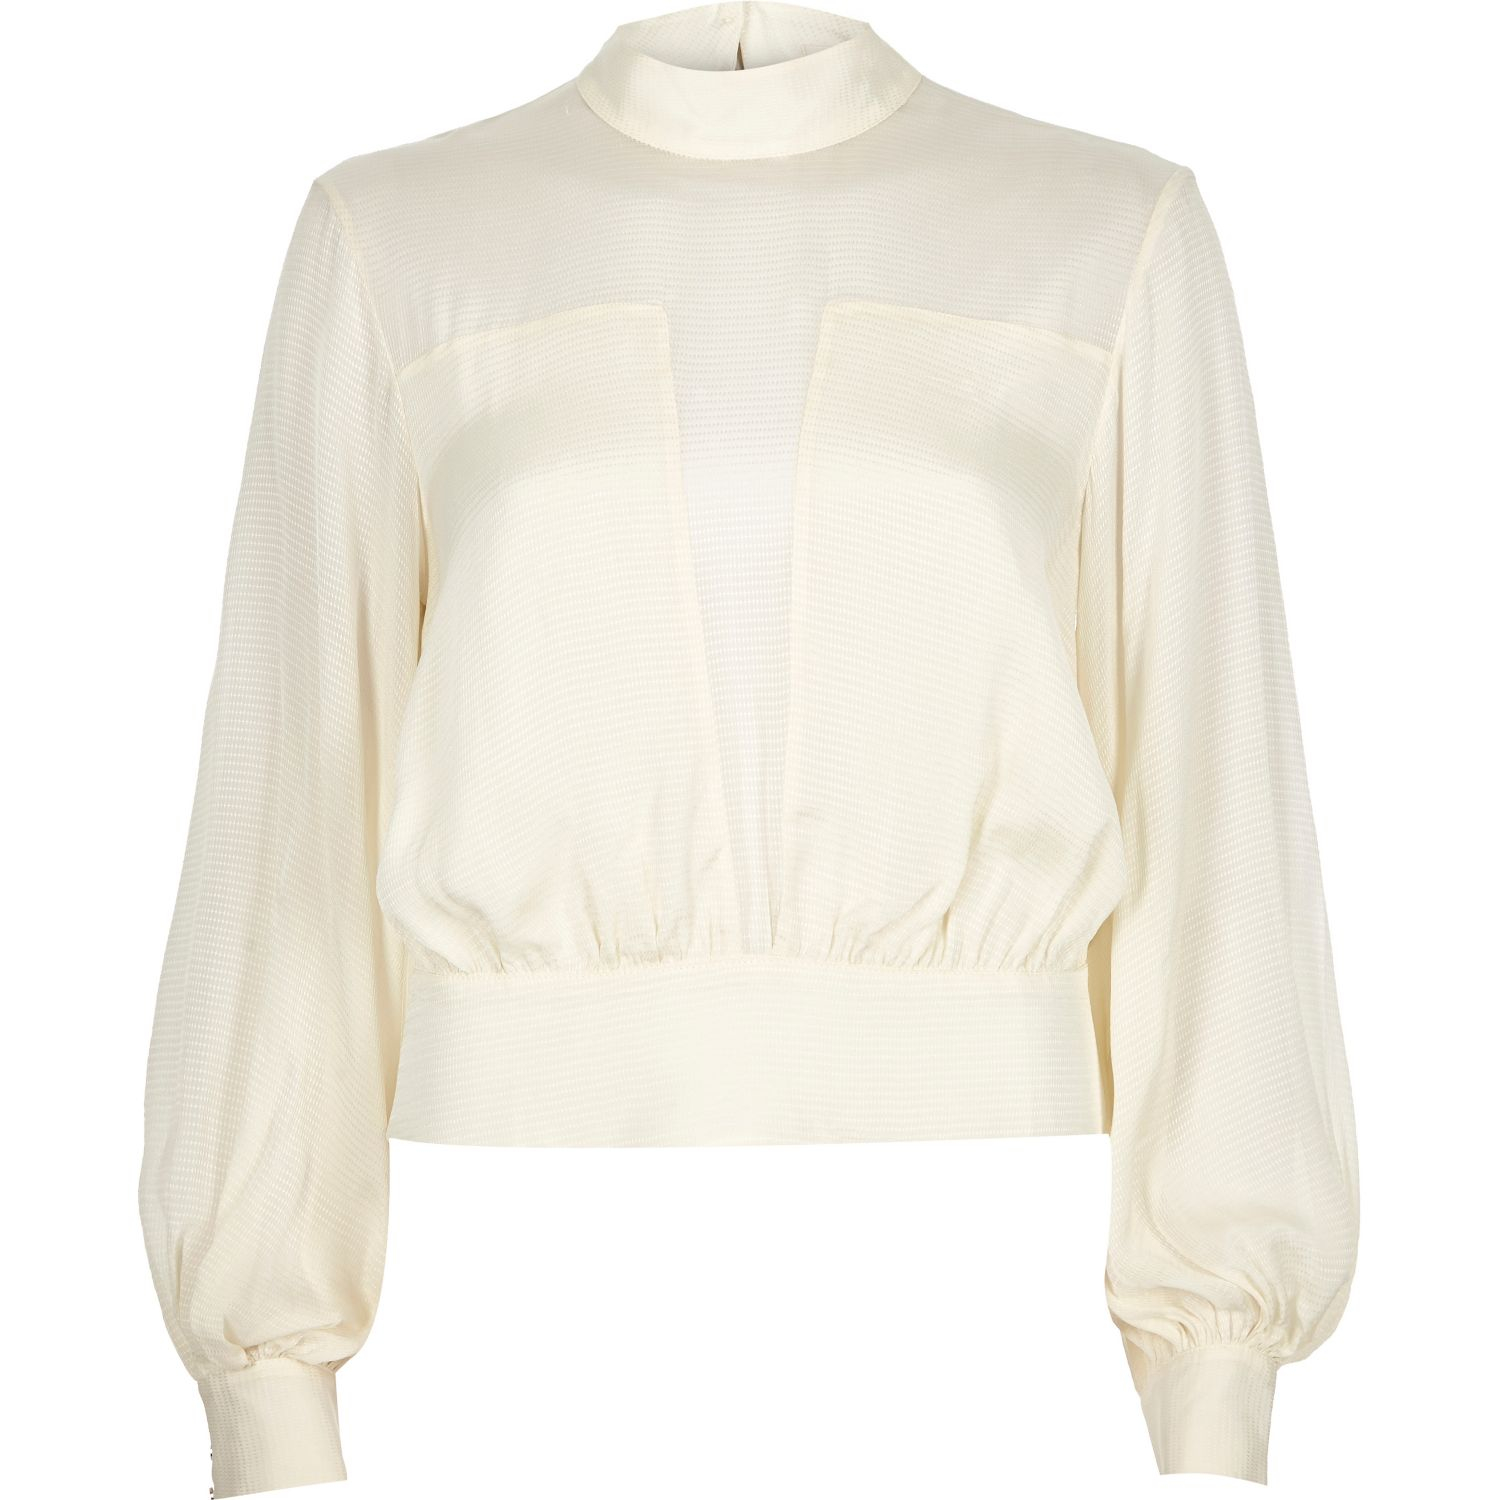 dffe012478e River Island Cream Sheer High Neck Blouse in Natural - Lyst